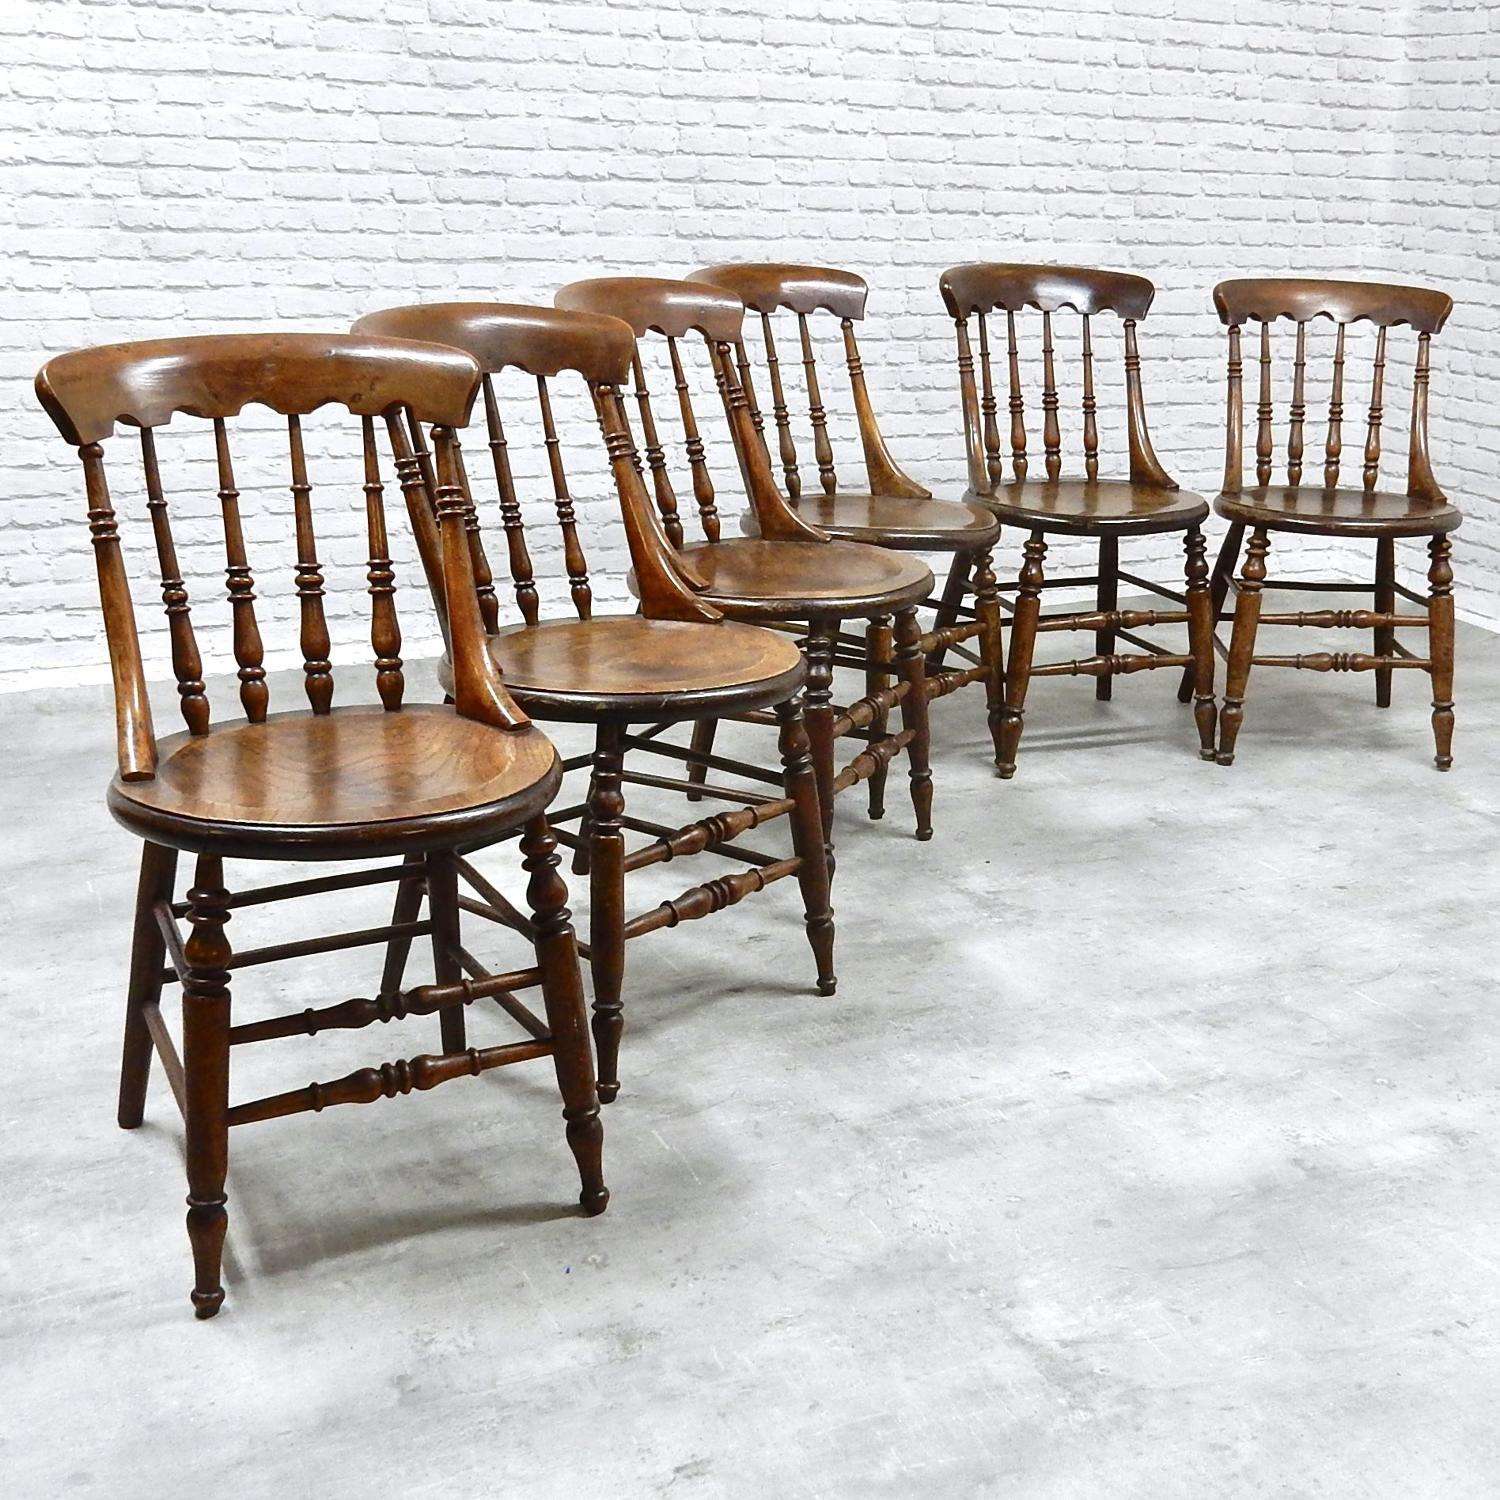 C19th Country Kitchen Chairs